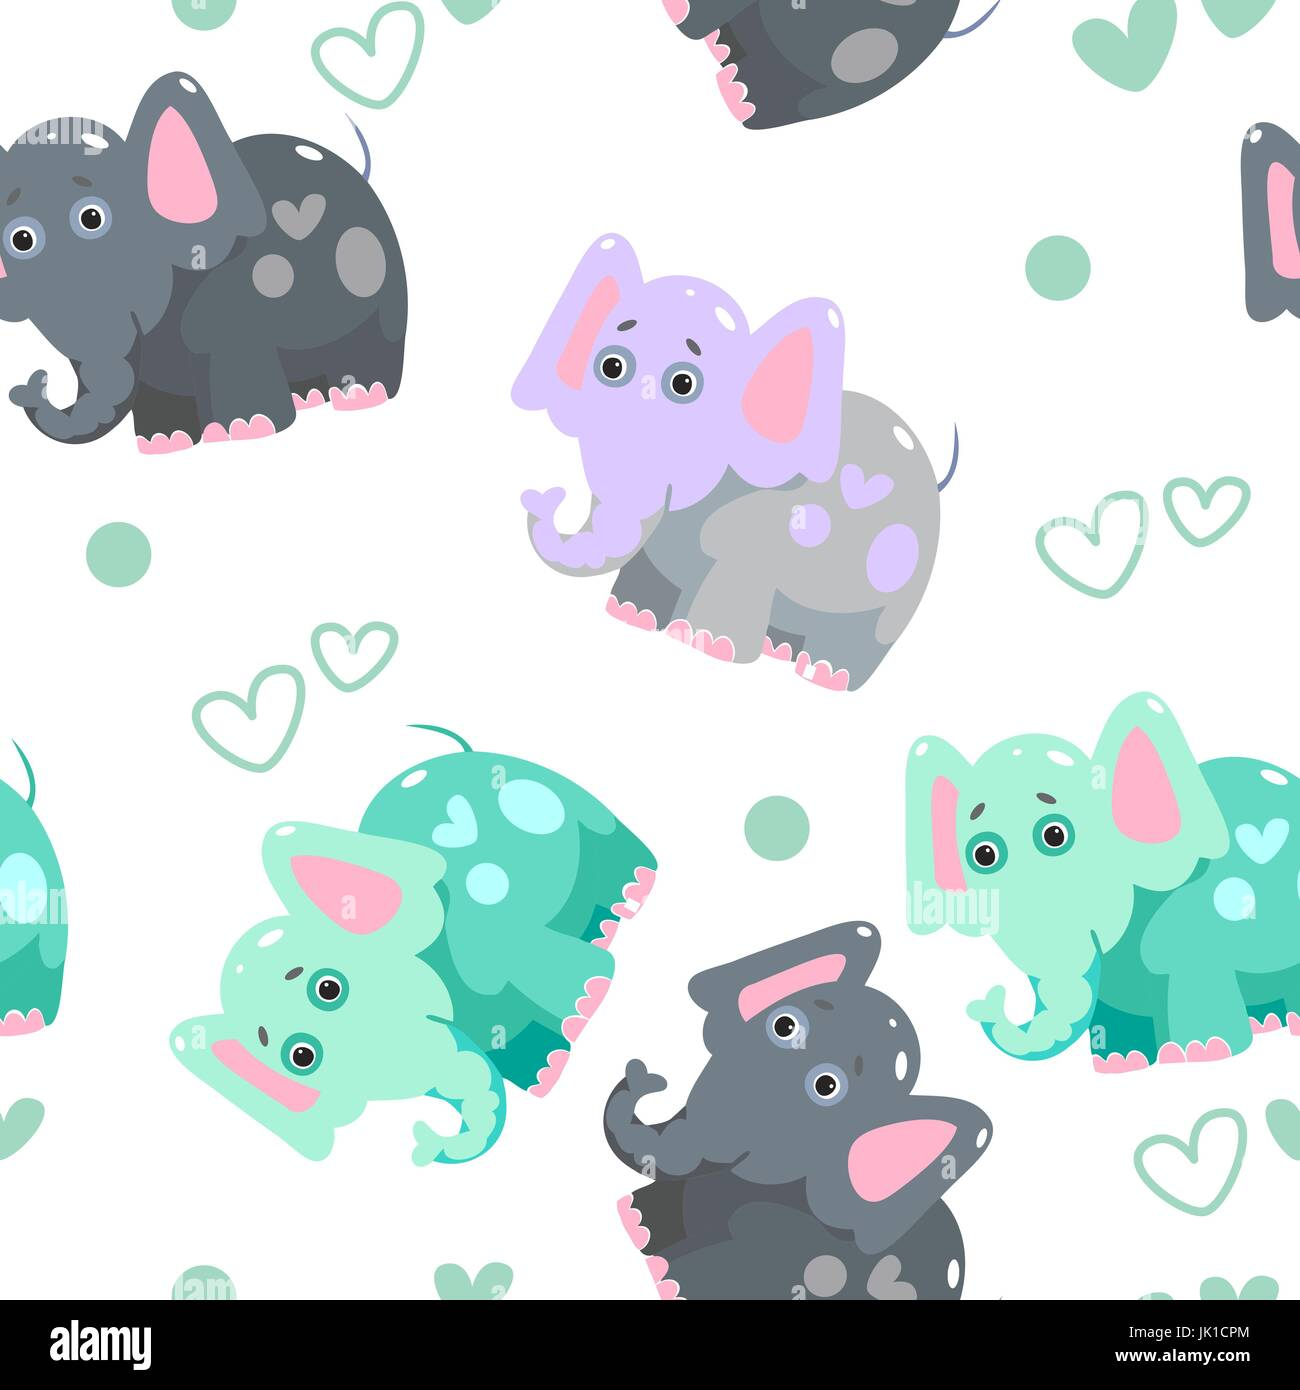 Texture of cheerful colorful elephants and hearts  Fantasy pattern